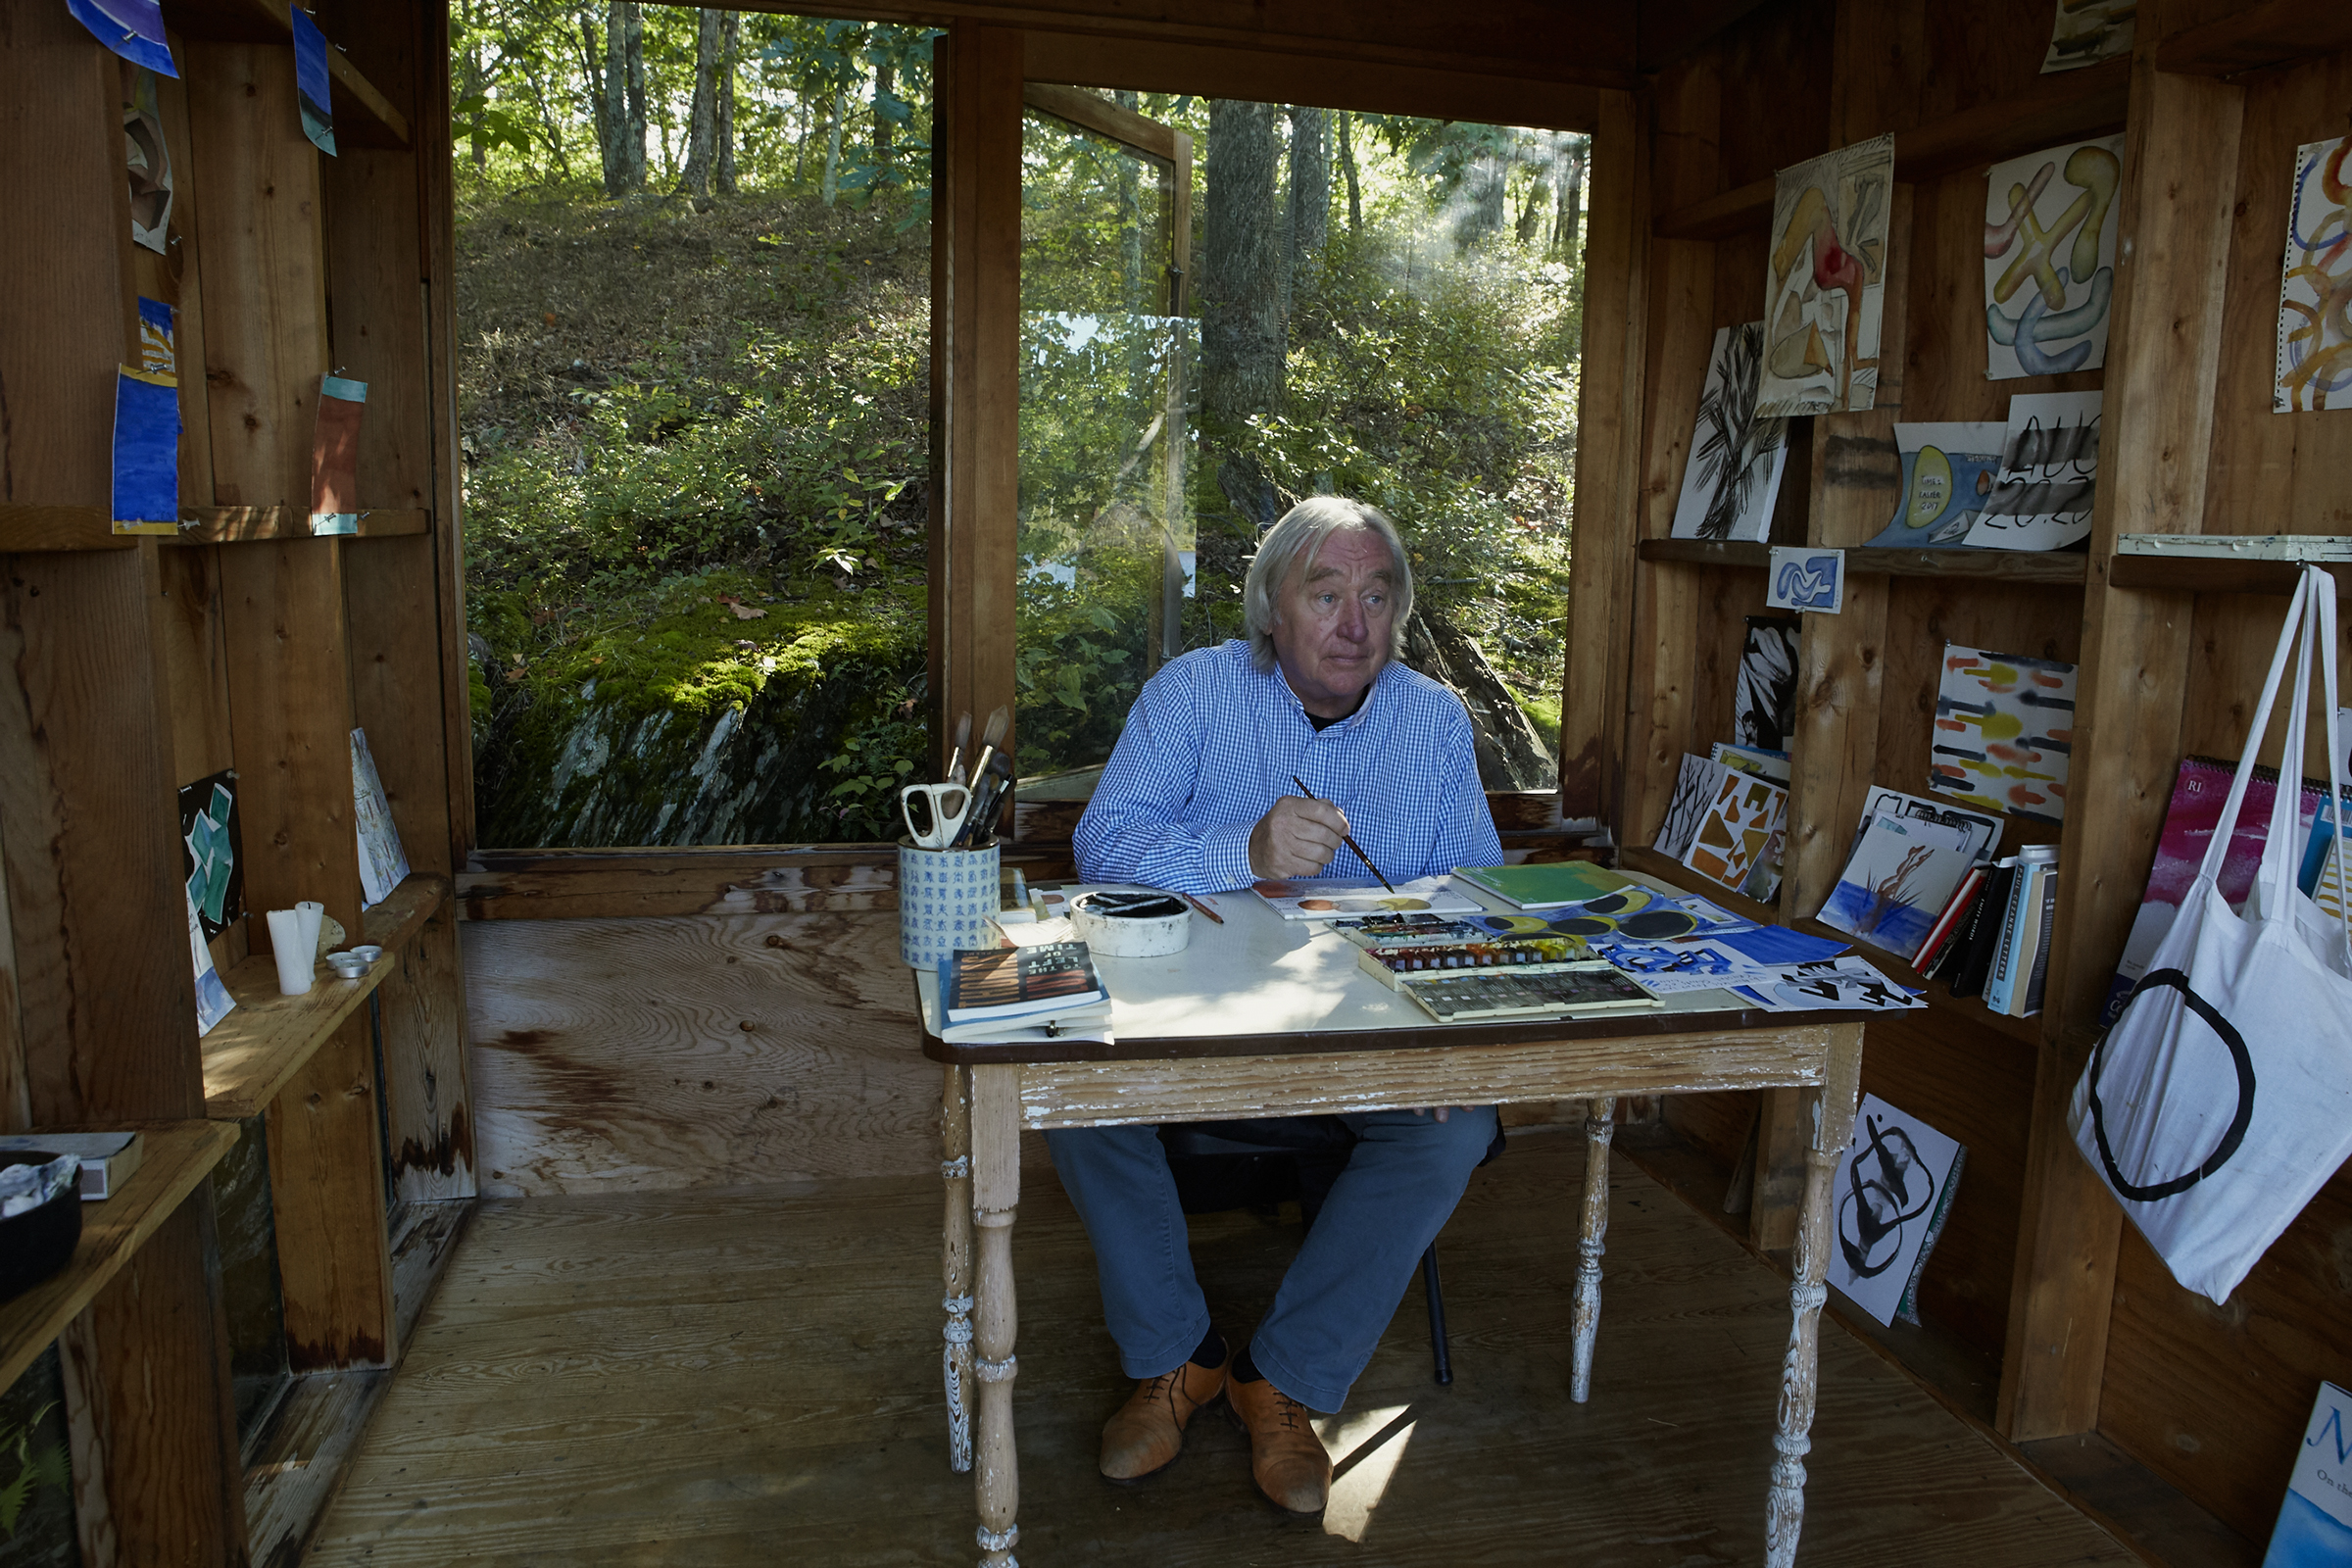 Holl at work in his watercolor hut by the lake.